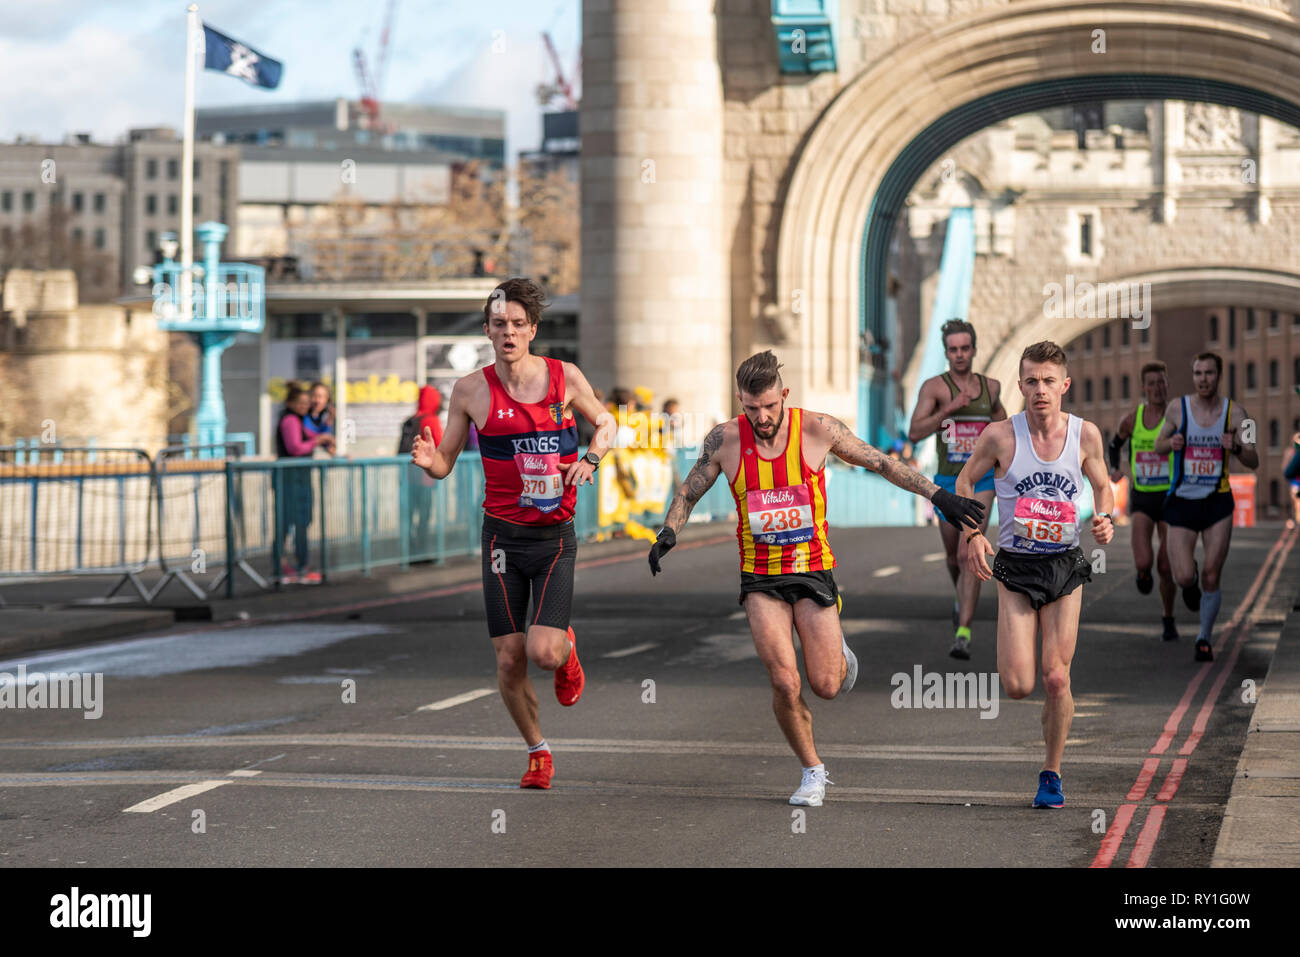 Maximilion Nicholls, Ash Harrell and Ross Skelton running in the Vitality Big Half half marathon crossing Tower Bridge, London UK. Strong wind blowing - Stock Image